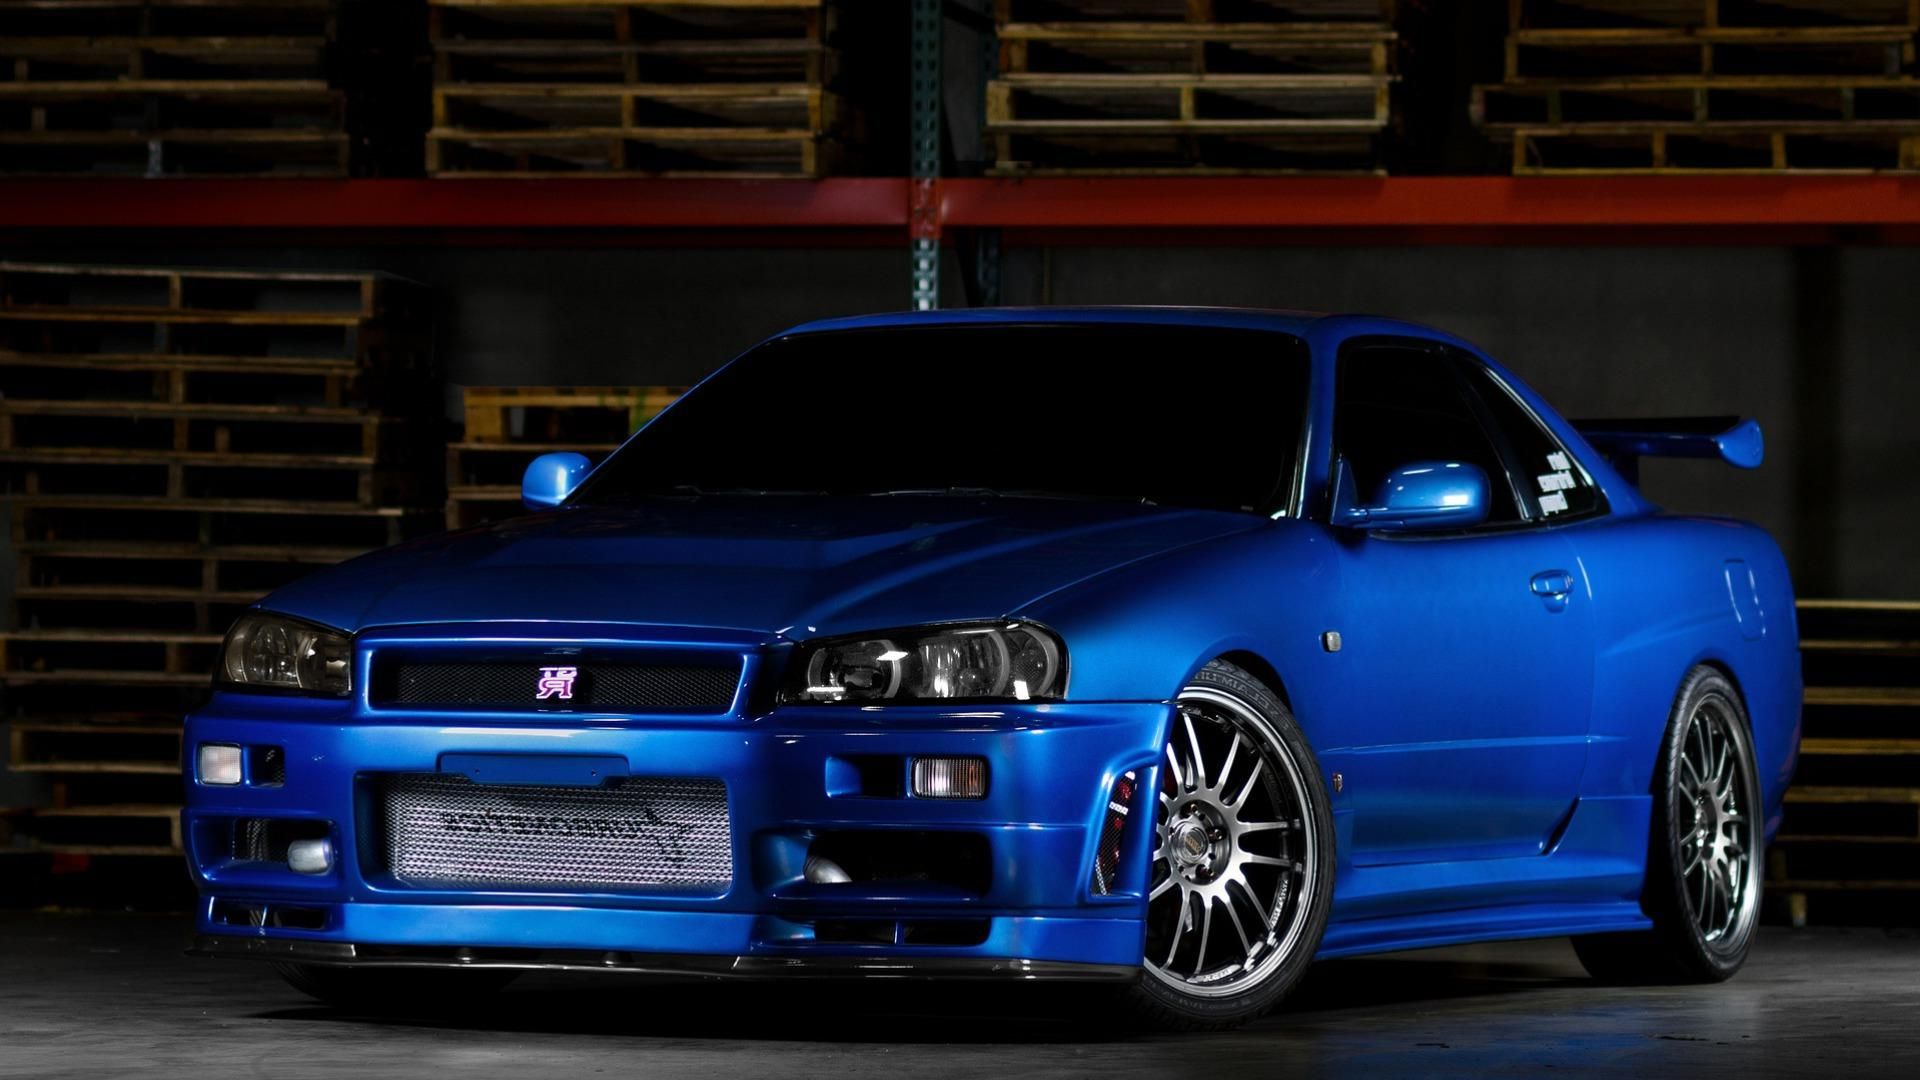 nissan skyline gtr r34 desktop hd wallpapers coches pinterest skyline gtr r34 skyline gtr. Black Bedroom Furniture Sets. Home Design Ideas